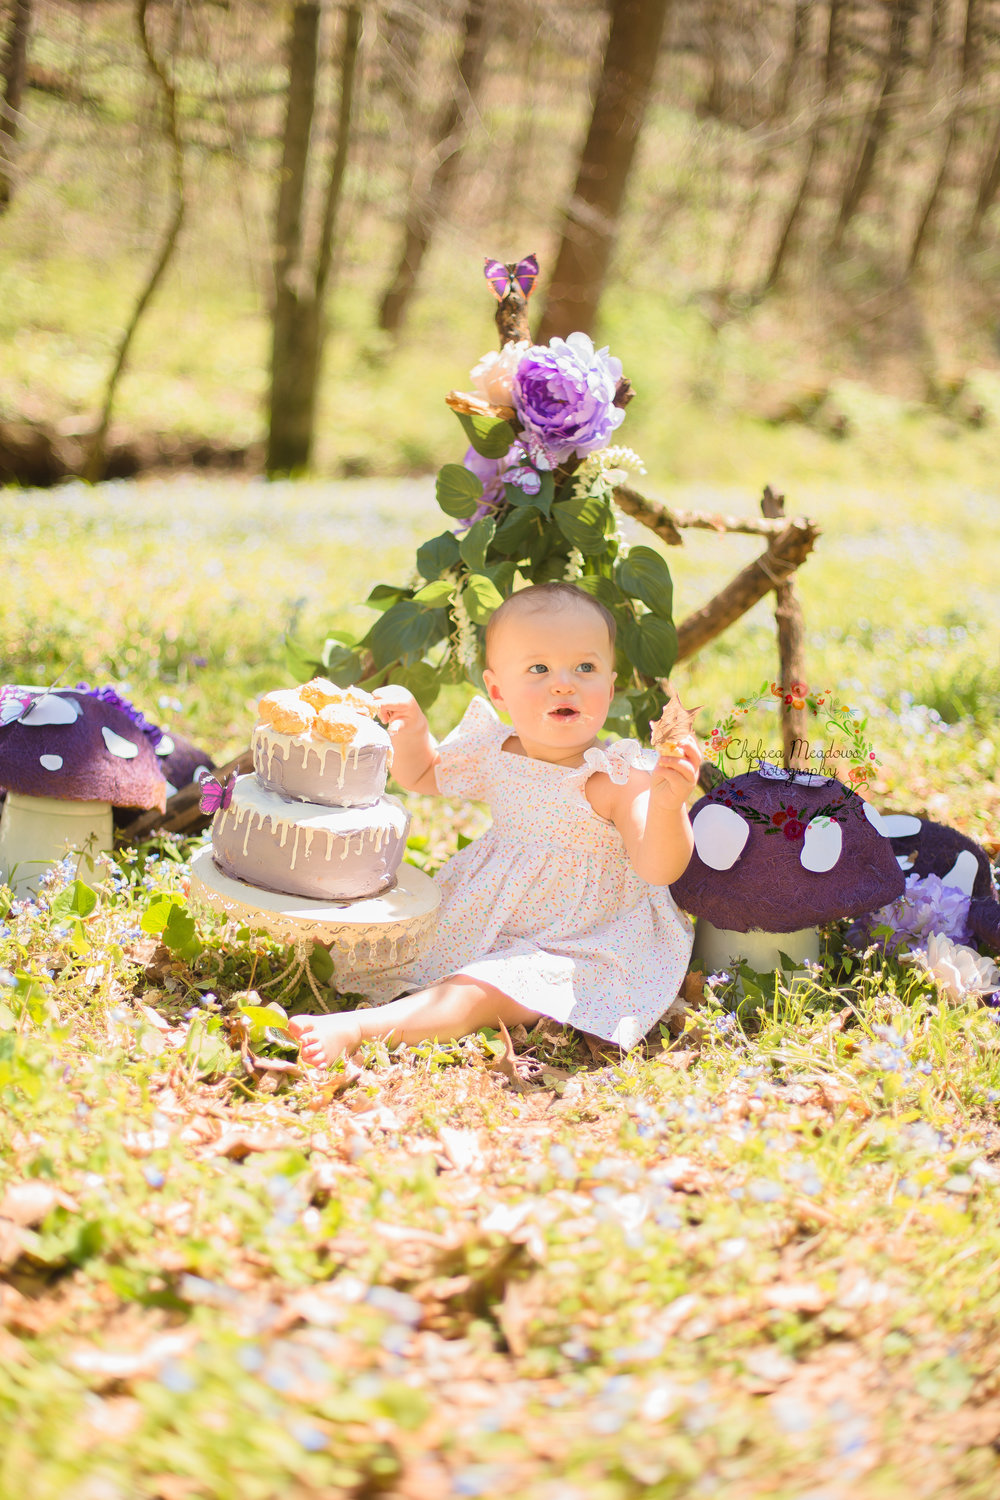 Ivy Cake Smash - Nashville Family Photographer - Chelsea Meadows Photography (40).jpg